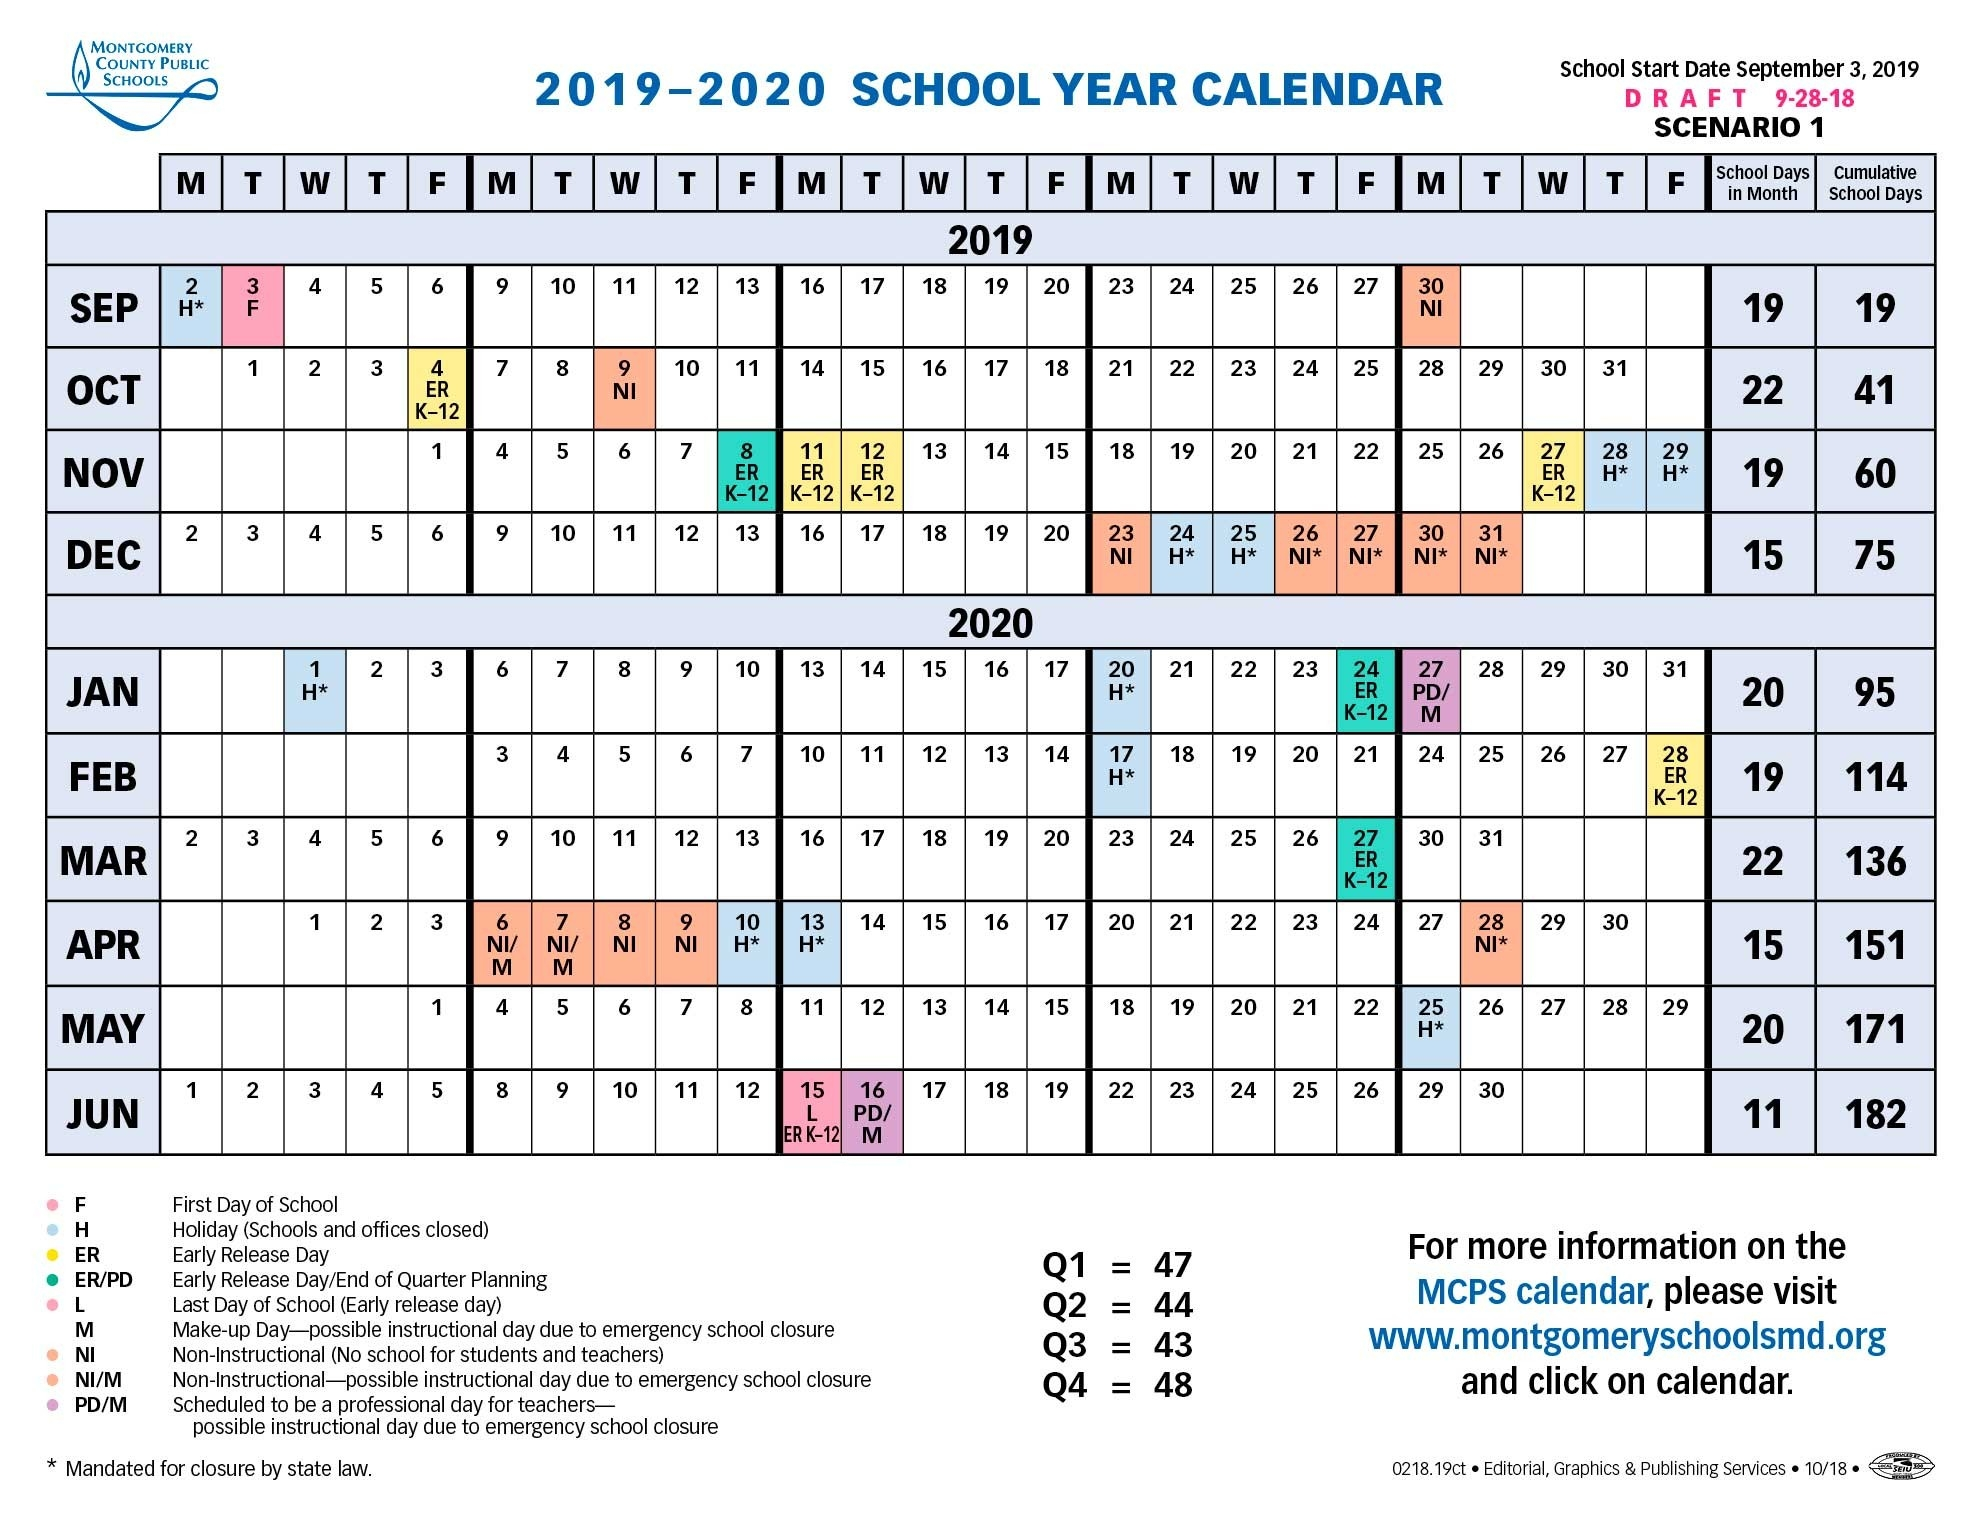 School Board Approves Longer Spring Break For 2019-2020-Calendar With Jewish Holidays 2020